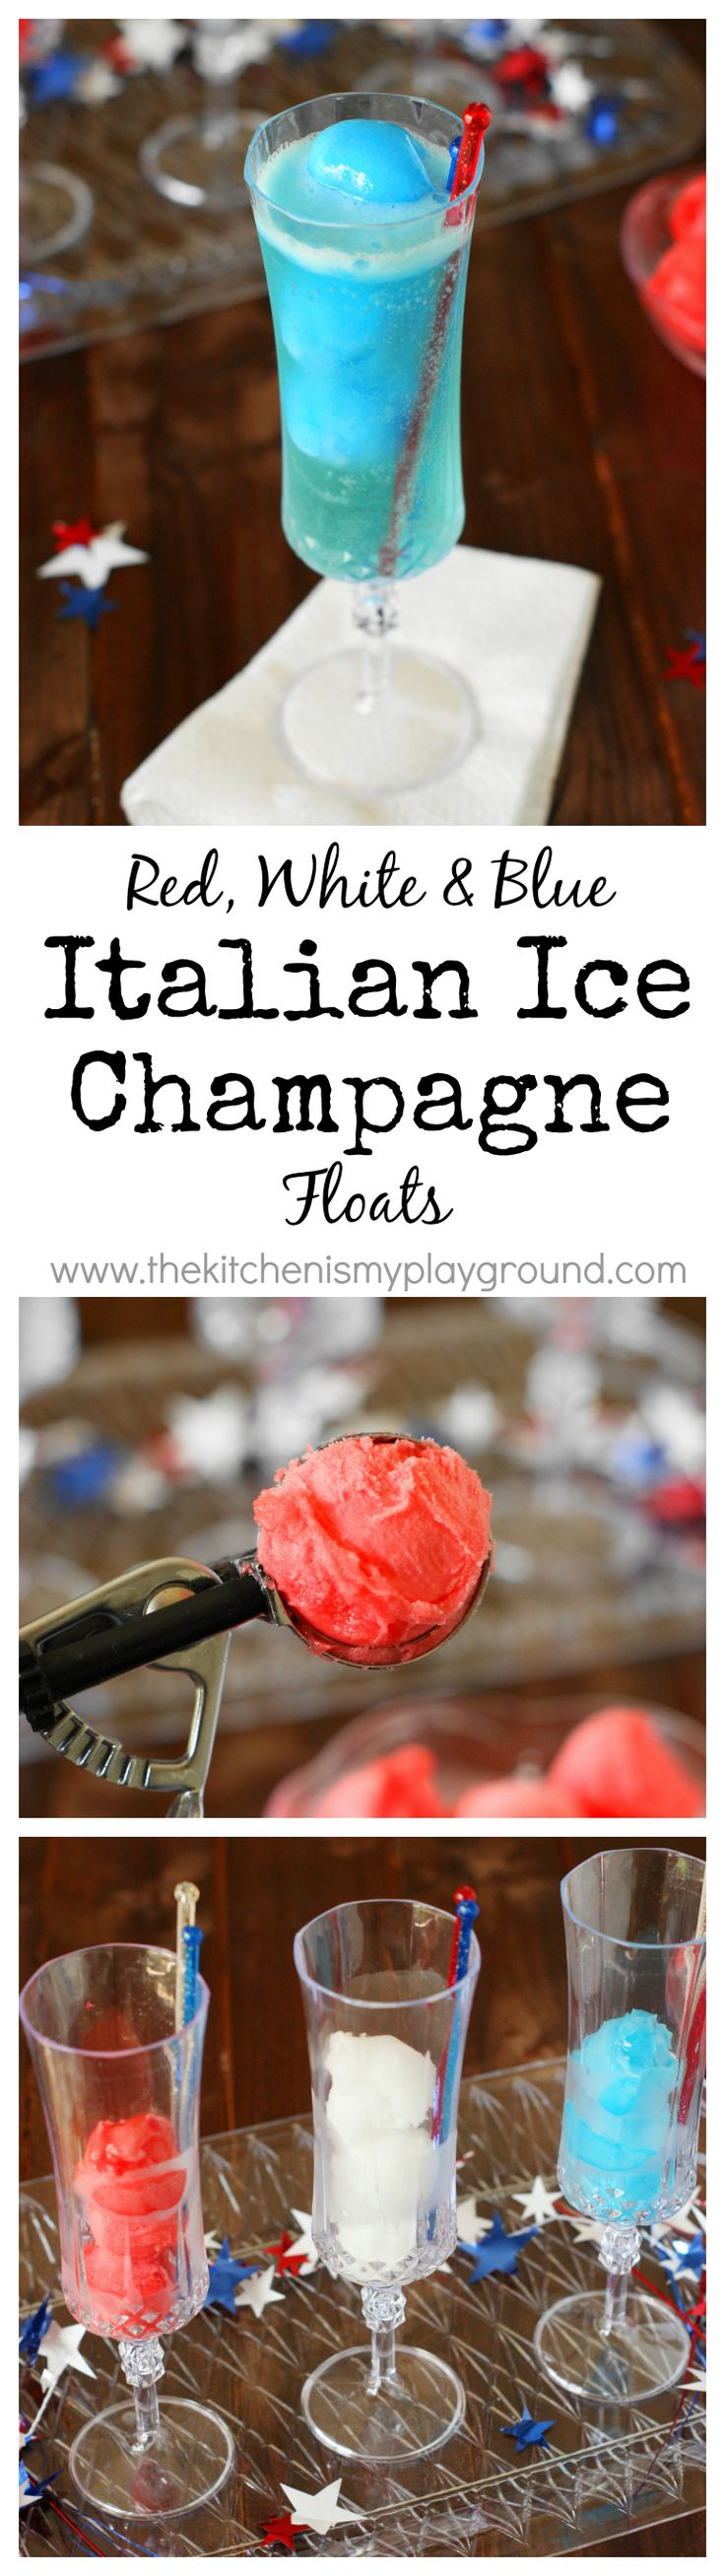 Italian Ice Champagne Floats ~ all dressed up in red, white & blue for the kid-at-heart in all of us! www.thekitchenismyplayground.com